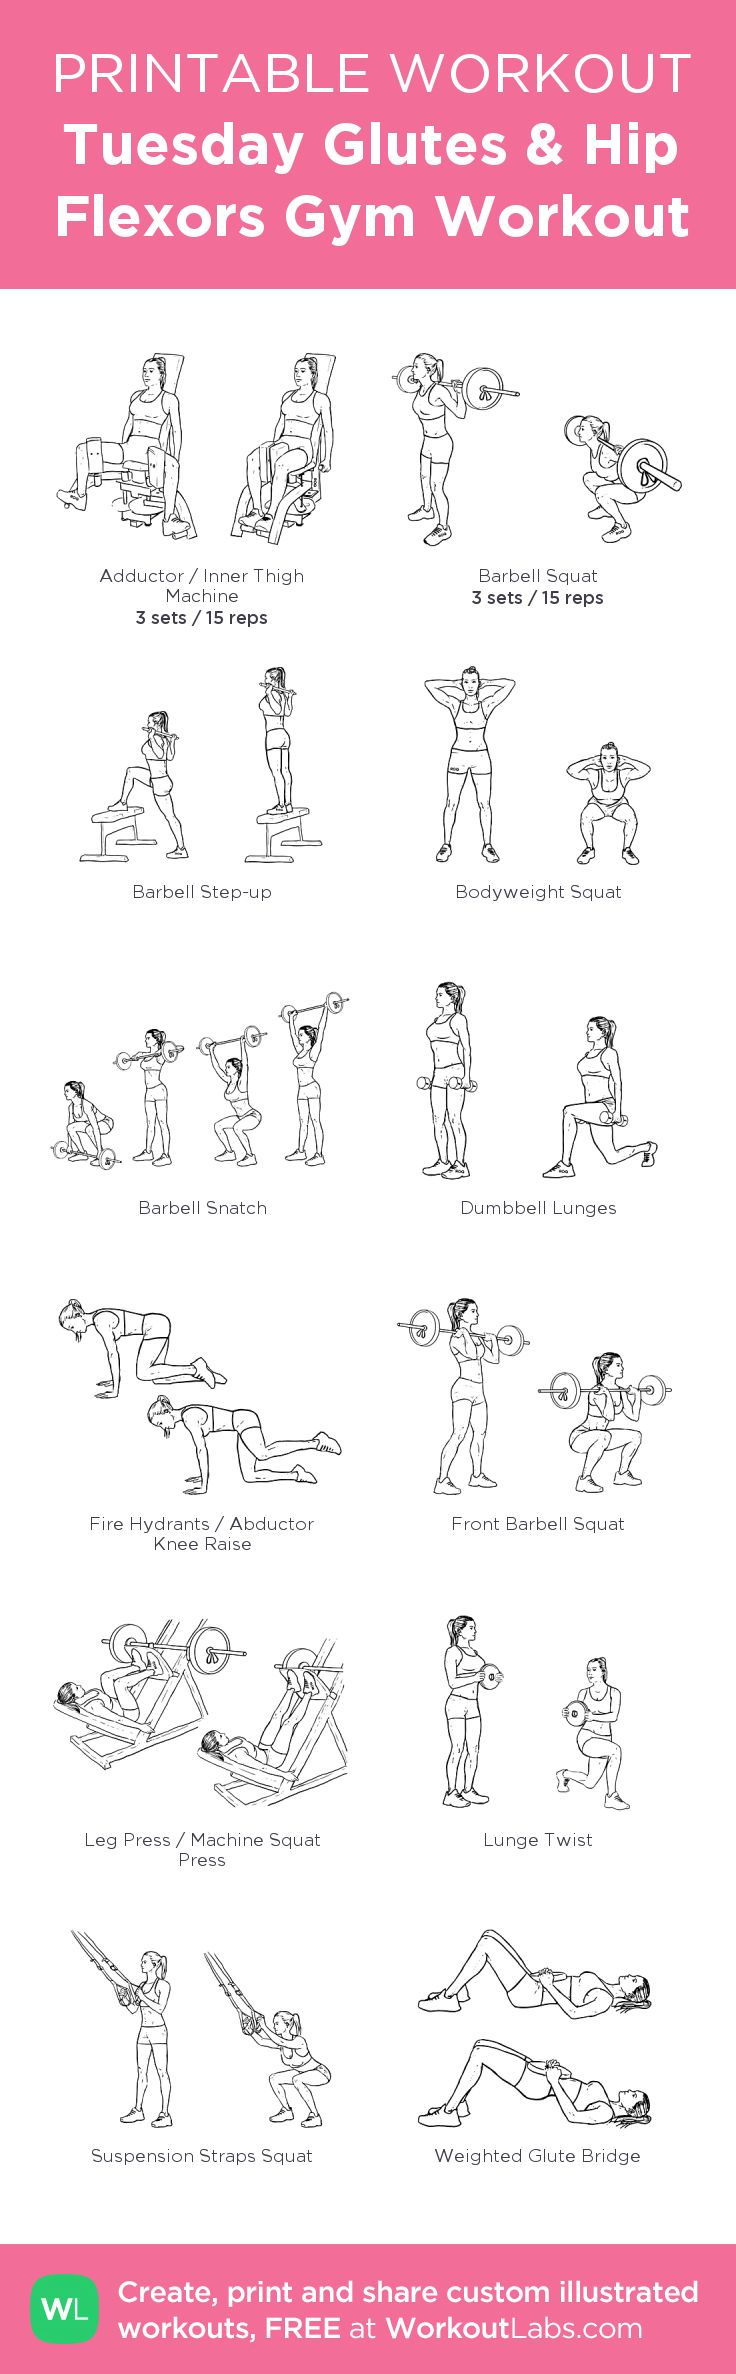 Tuesday Glutes & Hip Flexors Gym Workout:my visual workout created at WorkoutLabs.com • Click through to customize and download as a FREE PDF! #customworkout